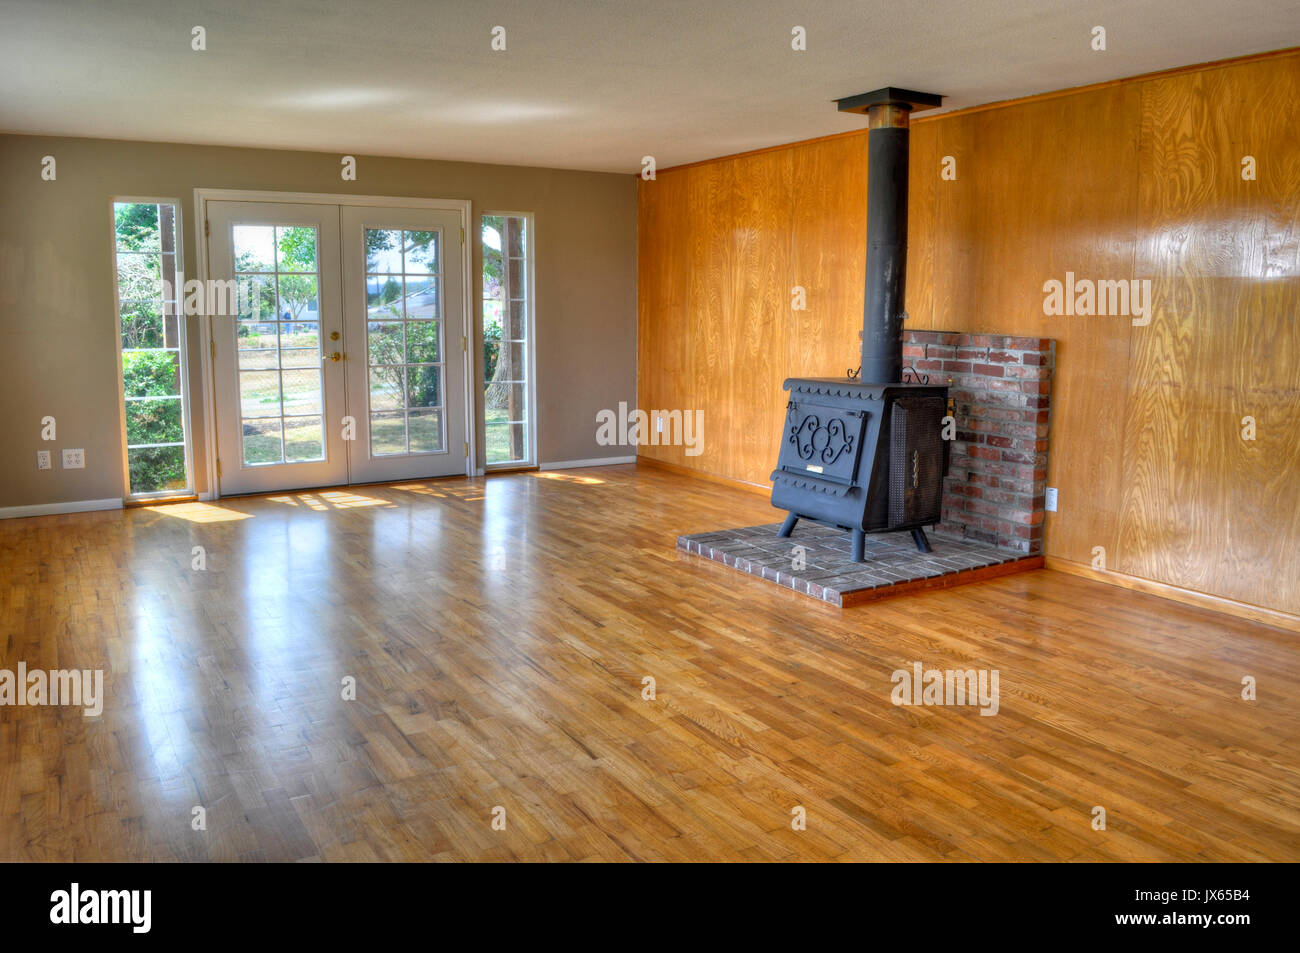 interior empty living room of a home with french glass doors stock